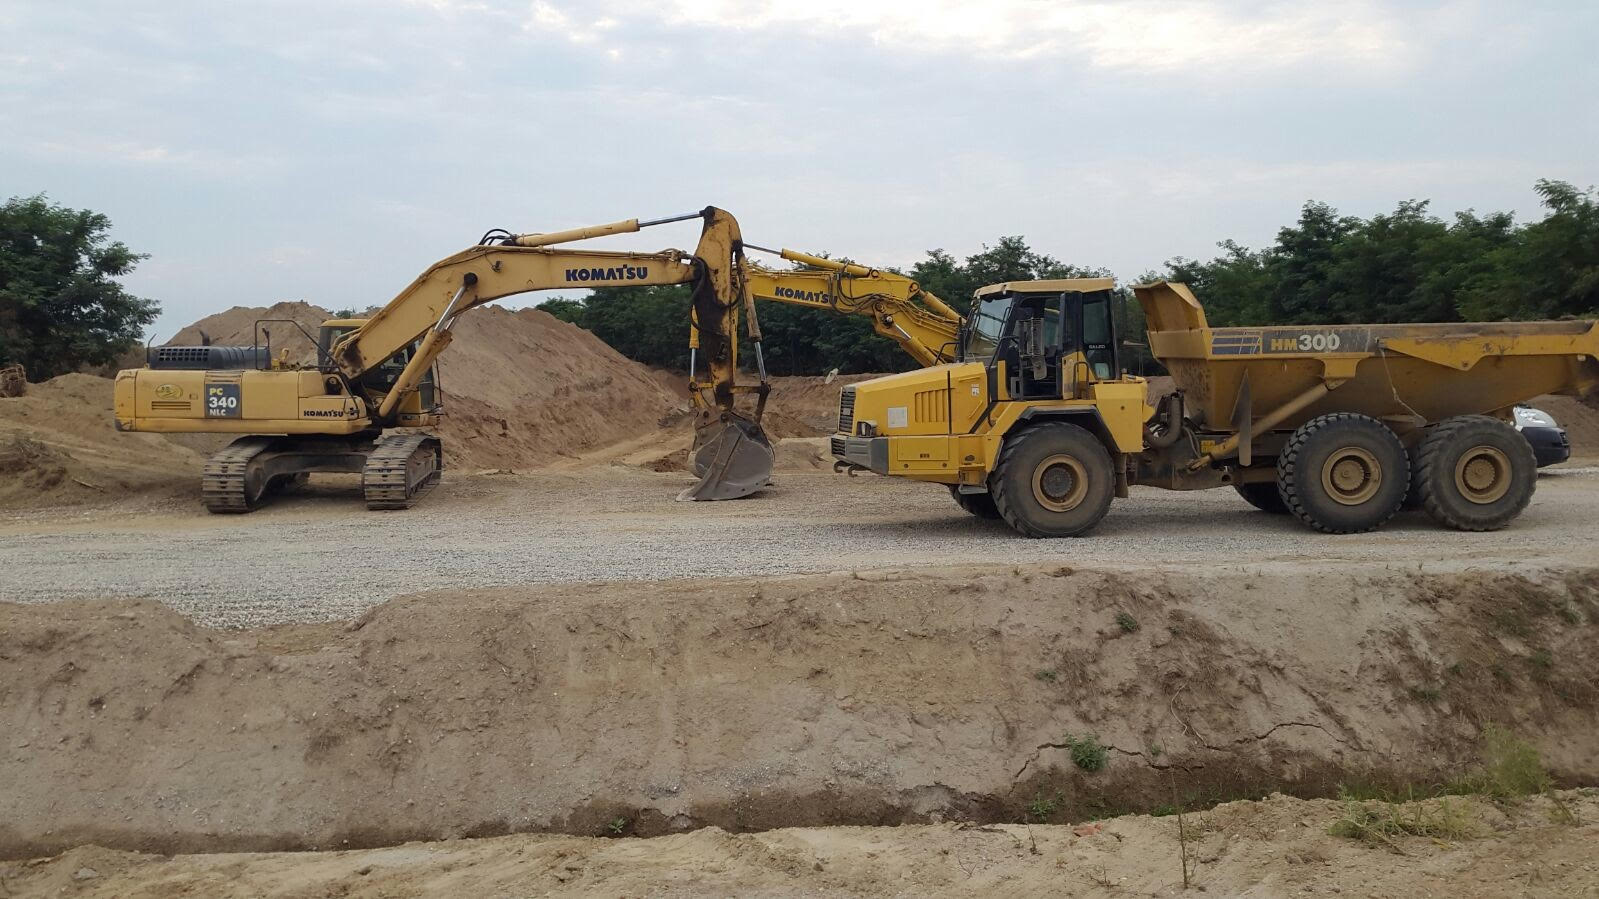 camion e gru in cantiere